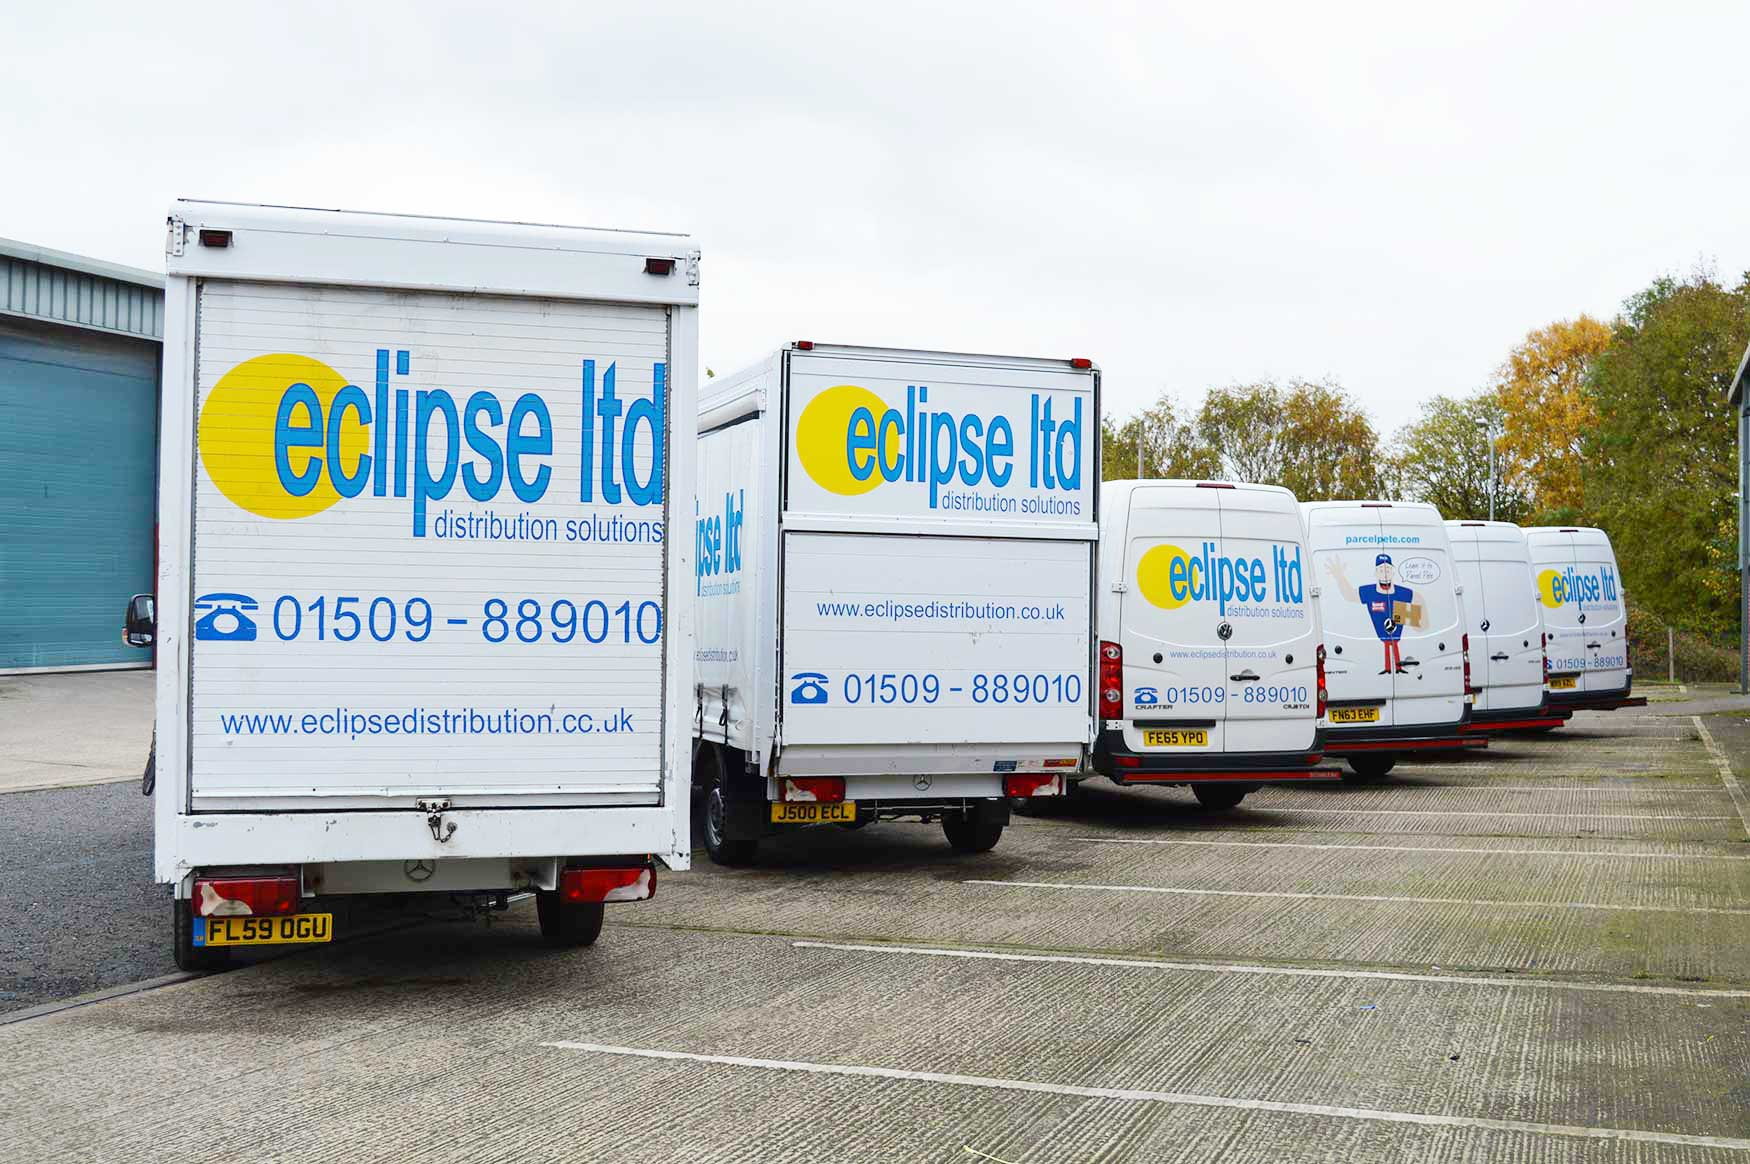 An image showing a rear view of the Eclipse Distribution Fleet.